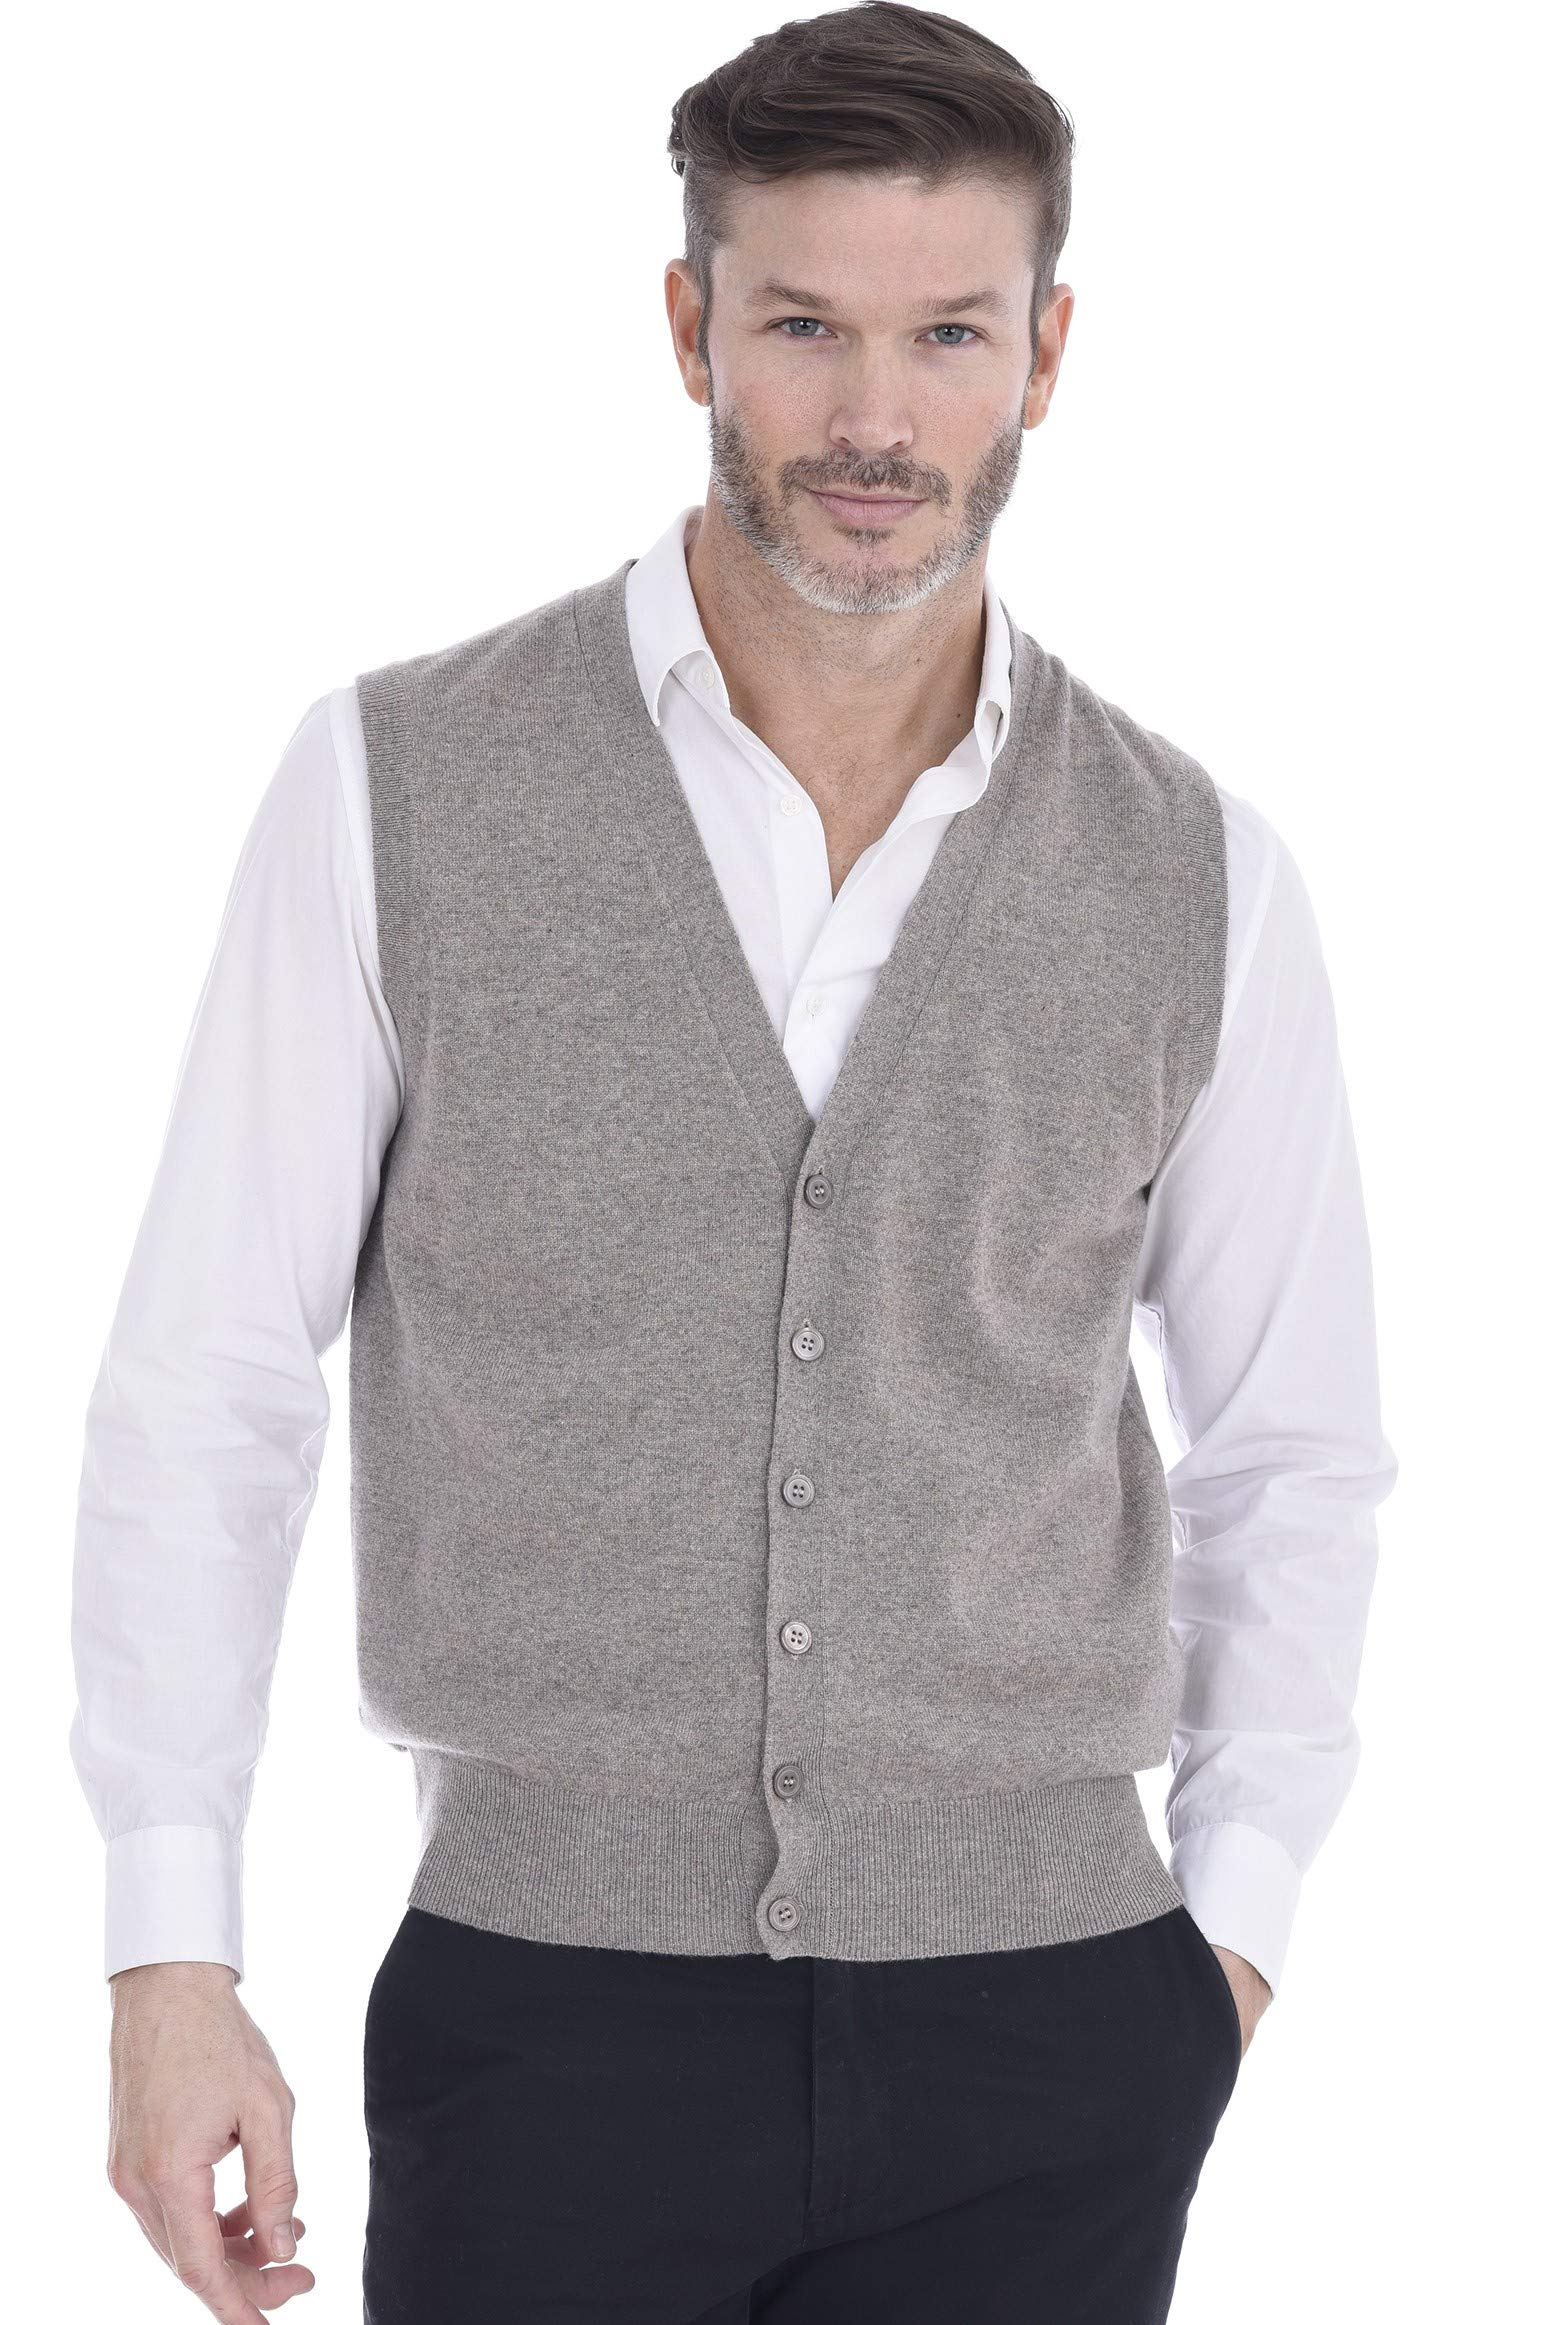 Cashmeren Button Down Vest Cable Knit 100% Pure Cashmere V-Neck Sleeveless Cardigan for Men (Small,Winter Twig) by Cashmeren